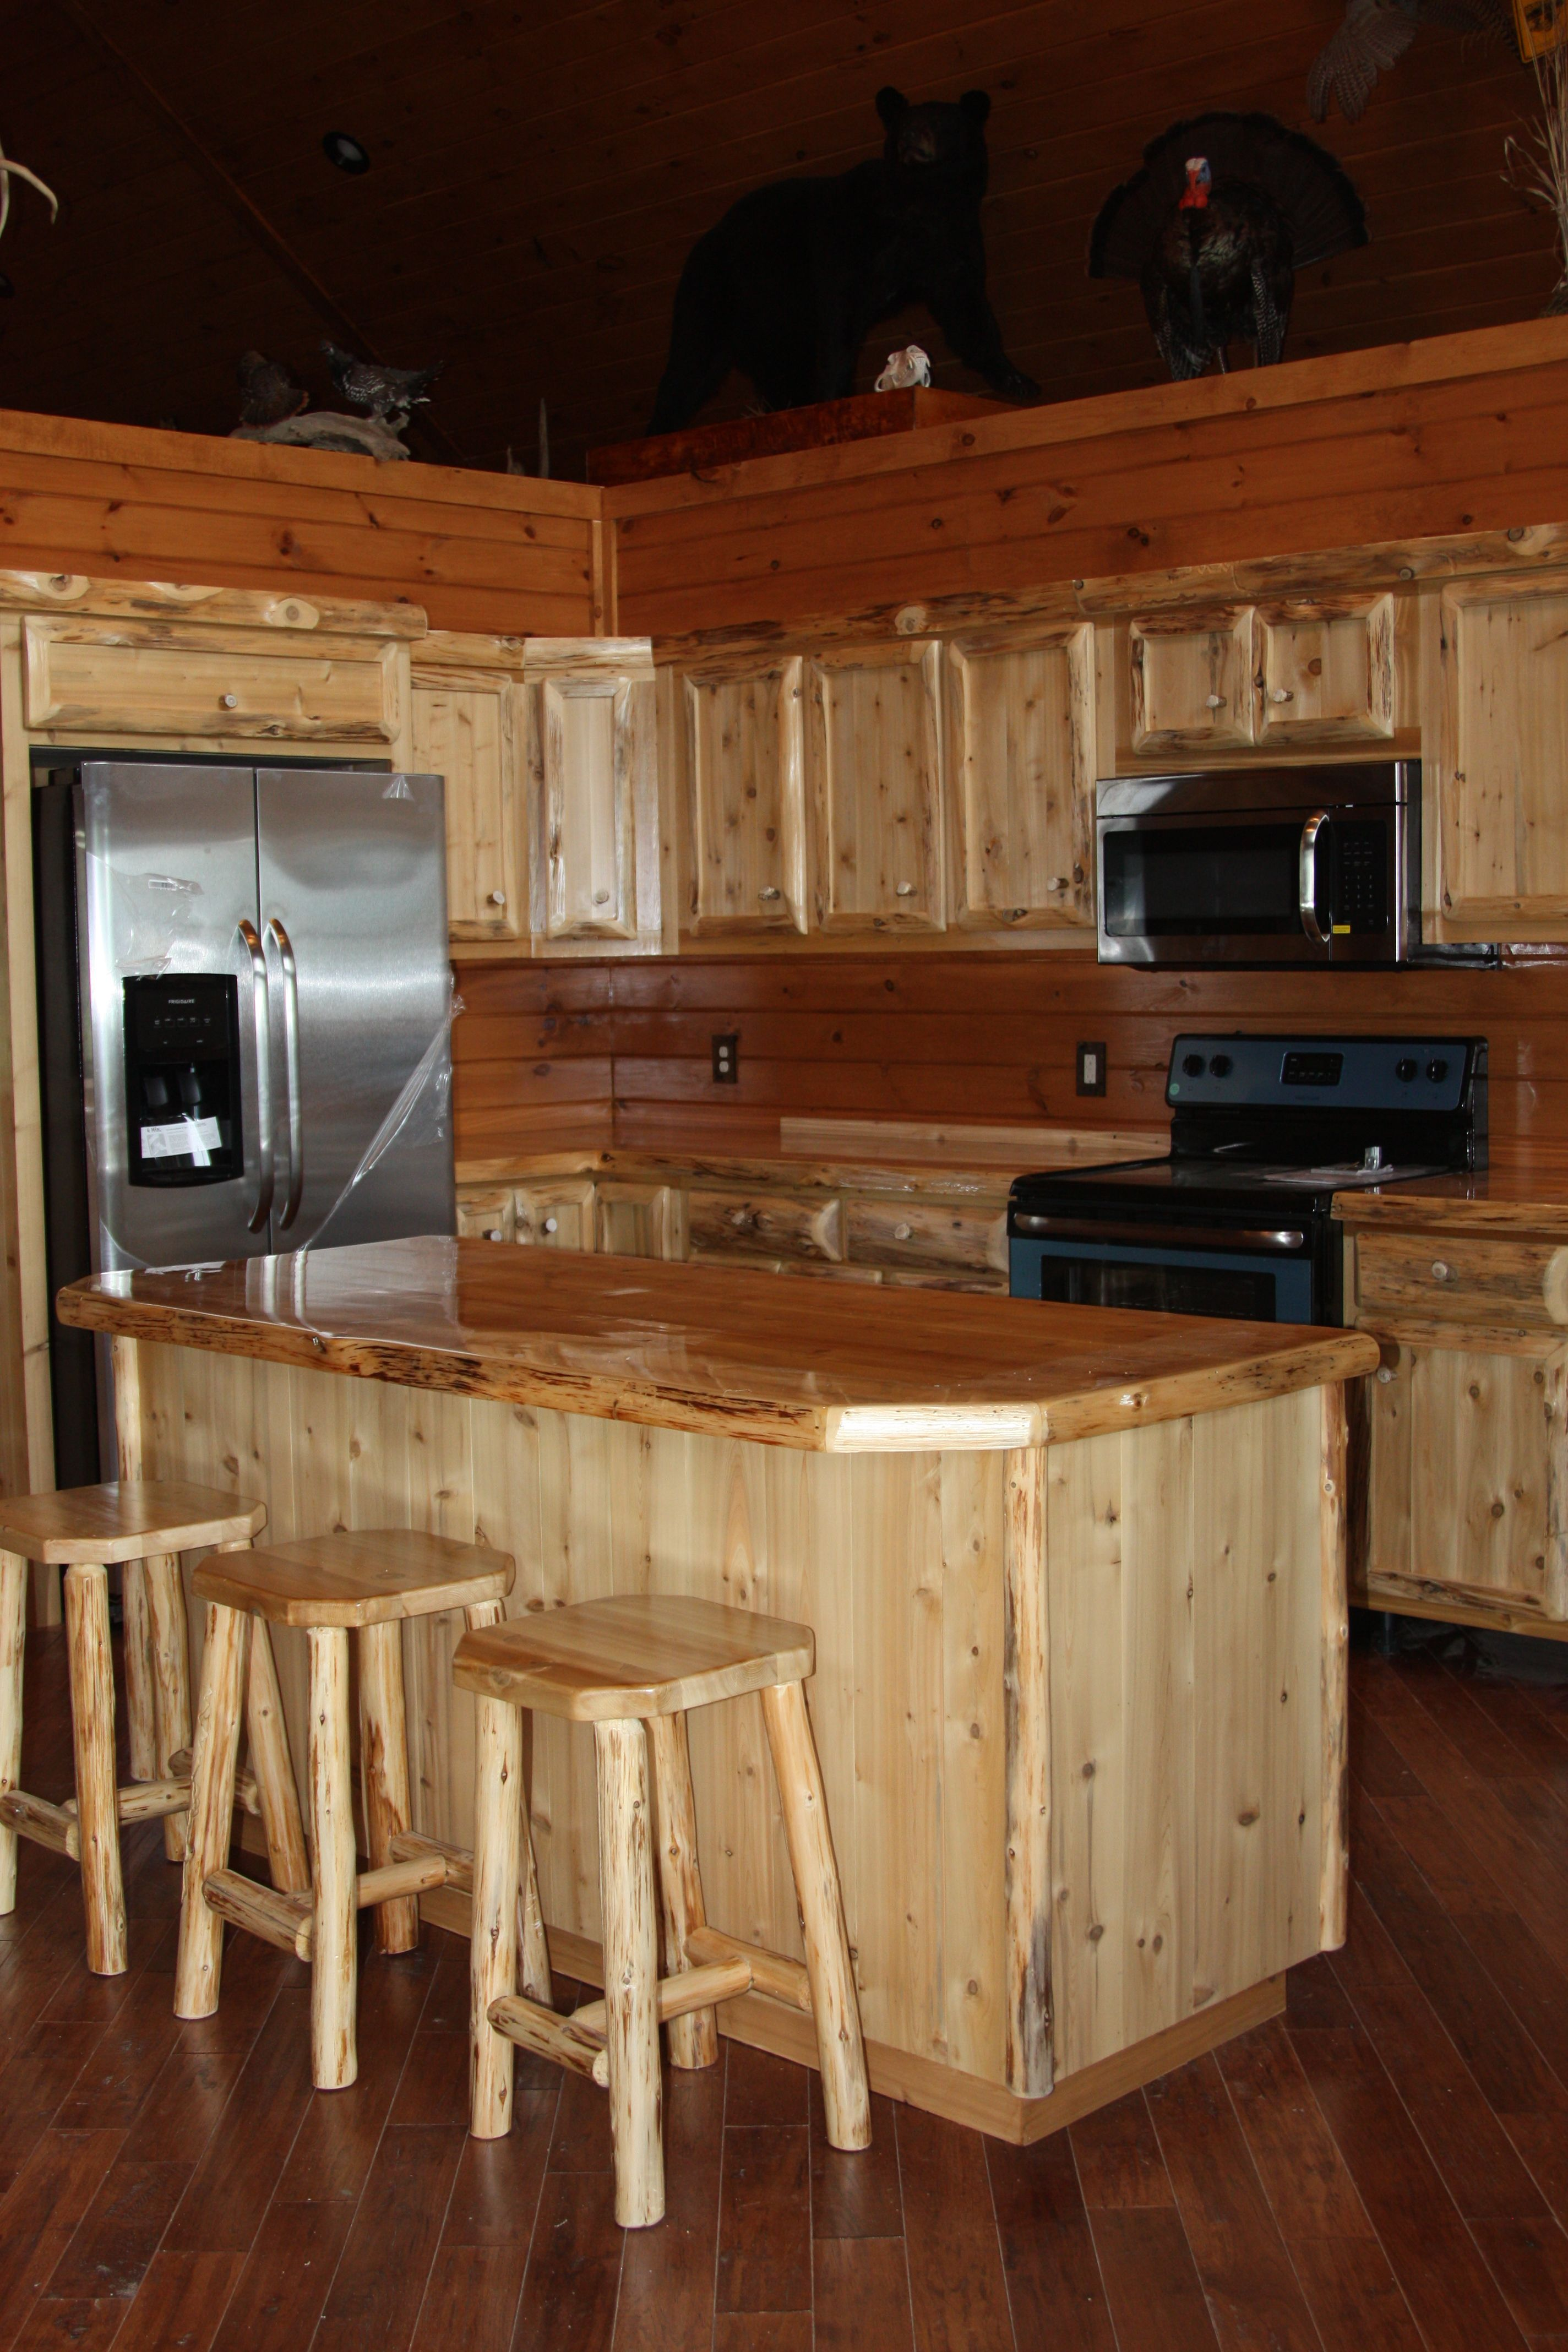 Hand Crafted Custom Rustic Cedar Kitchen Cabinets By King Of The Forest Furni